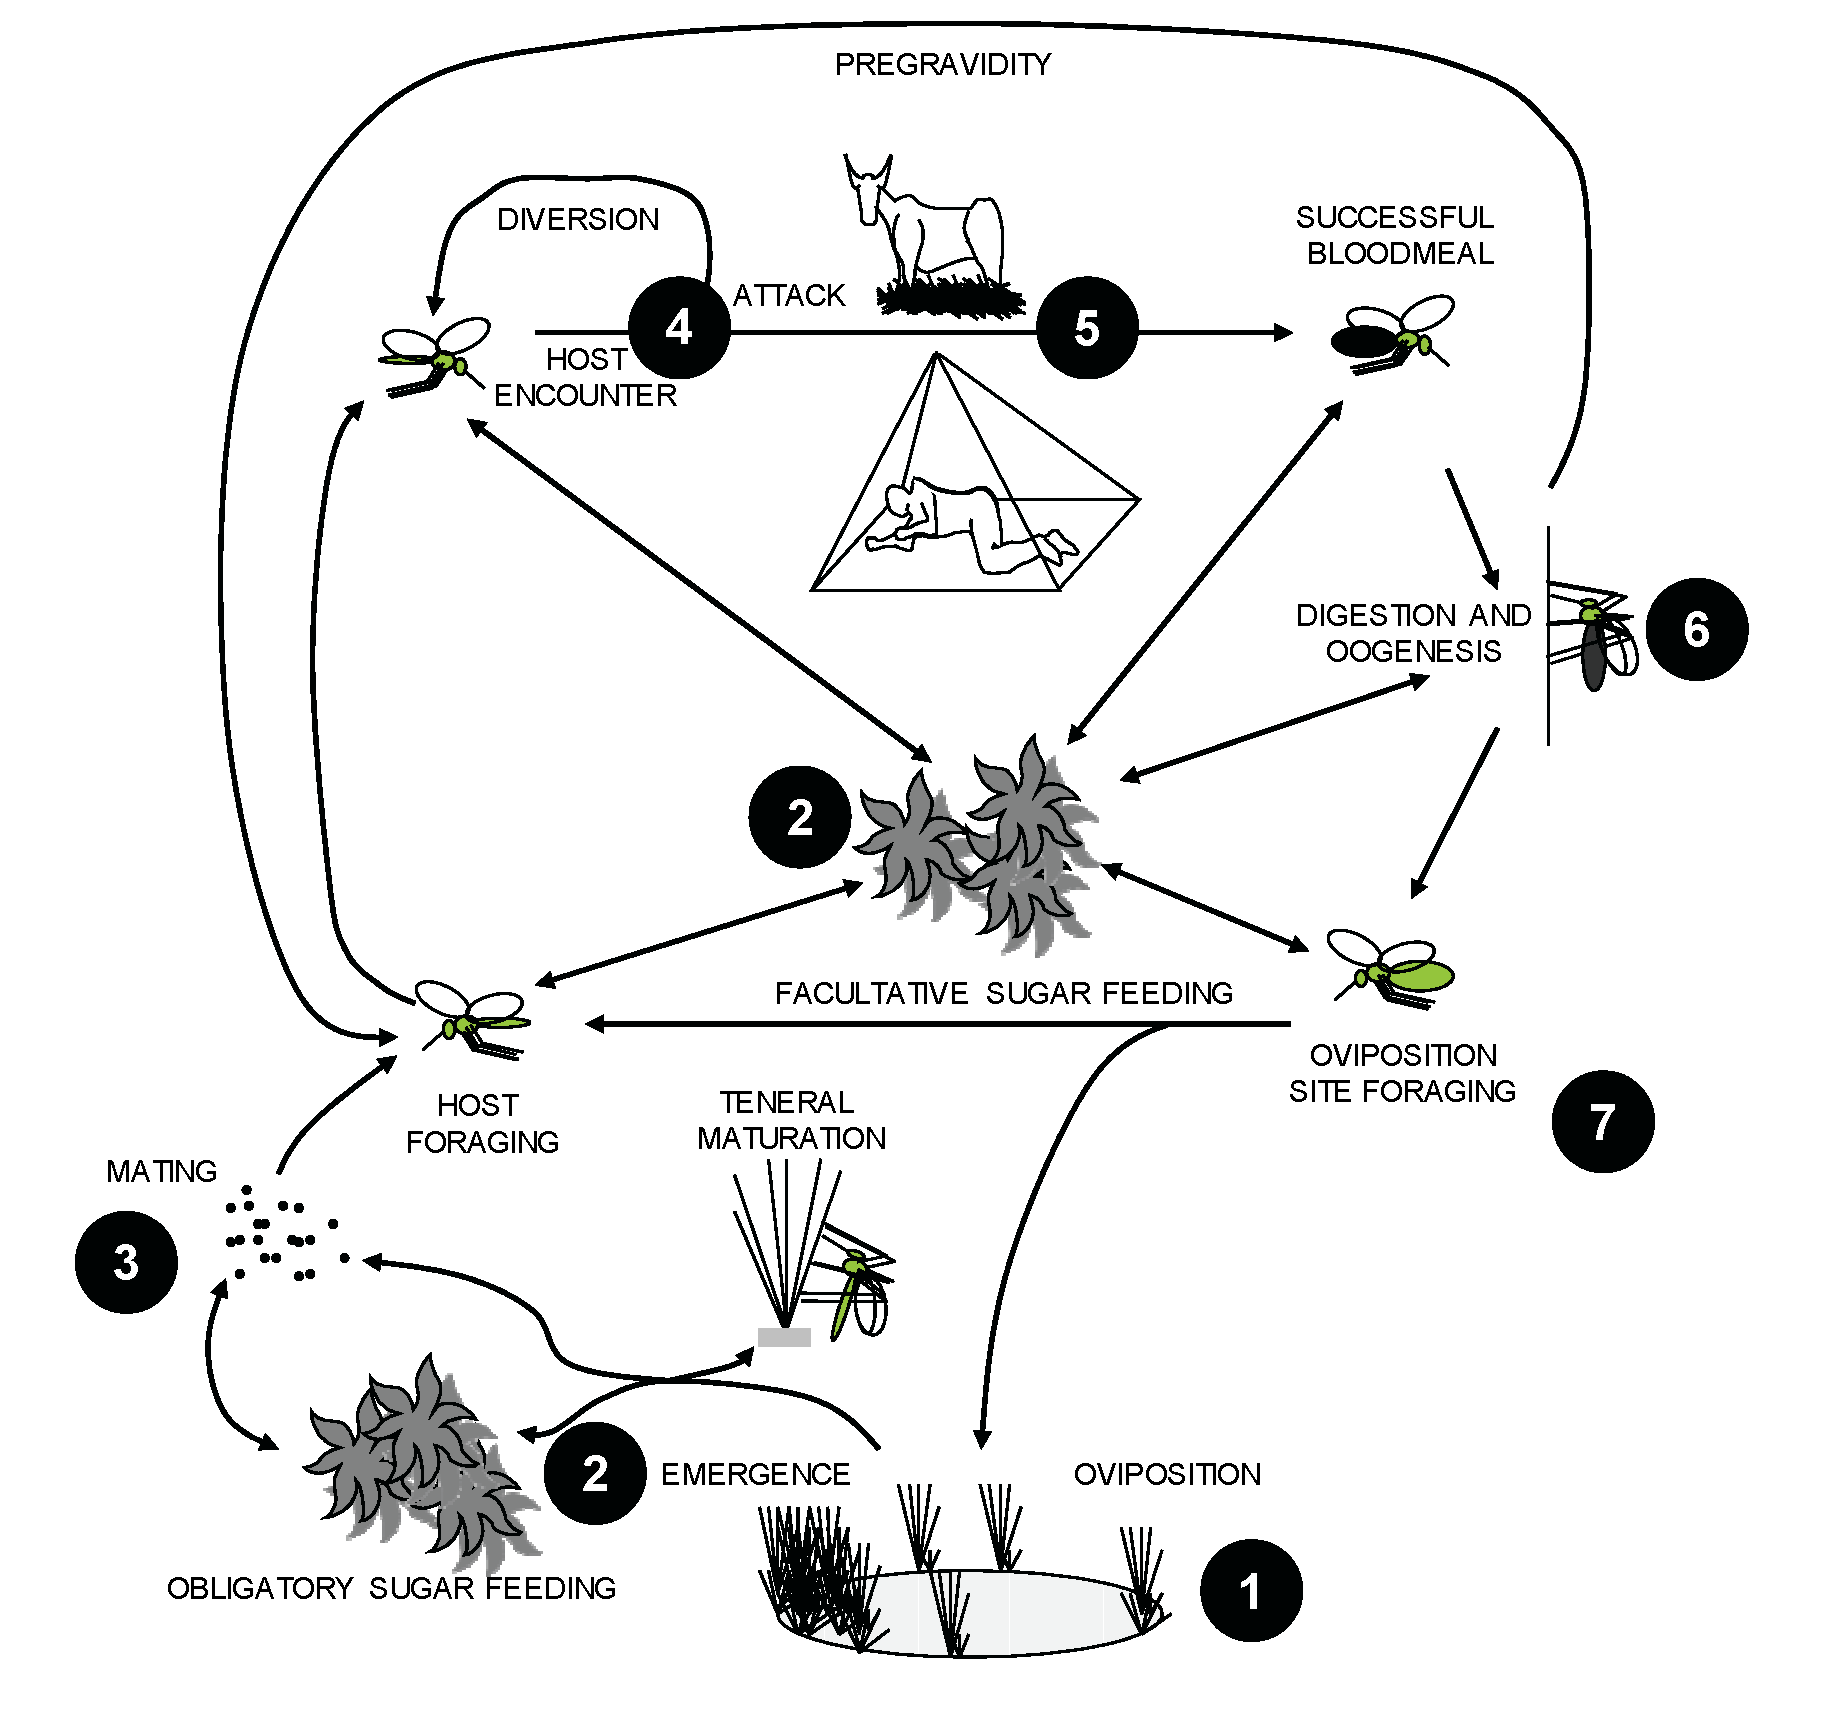 Life cycle components of malaria vector mosquitoes and corresponding examples of targets for novel intervention strategies.